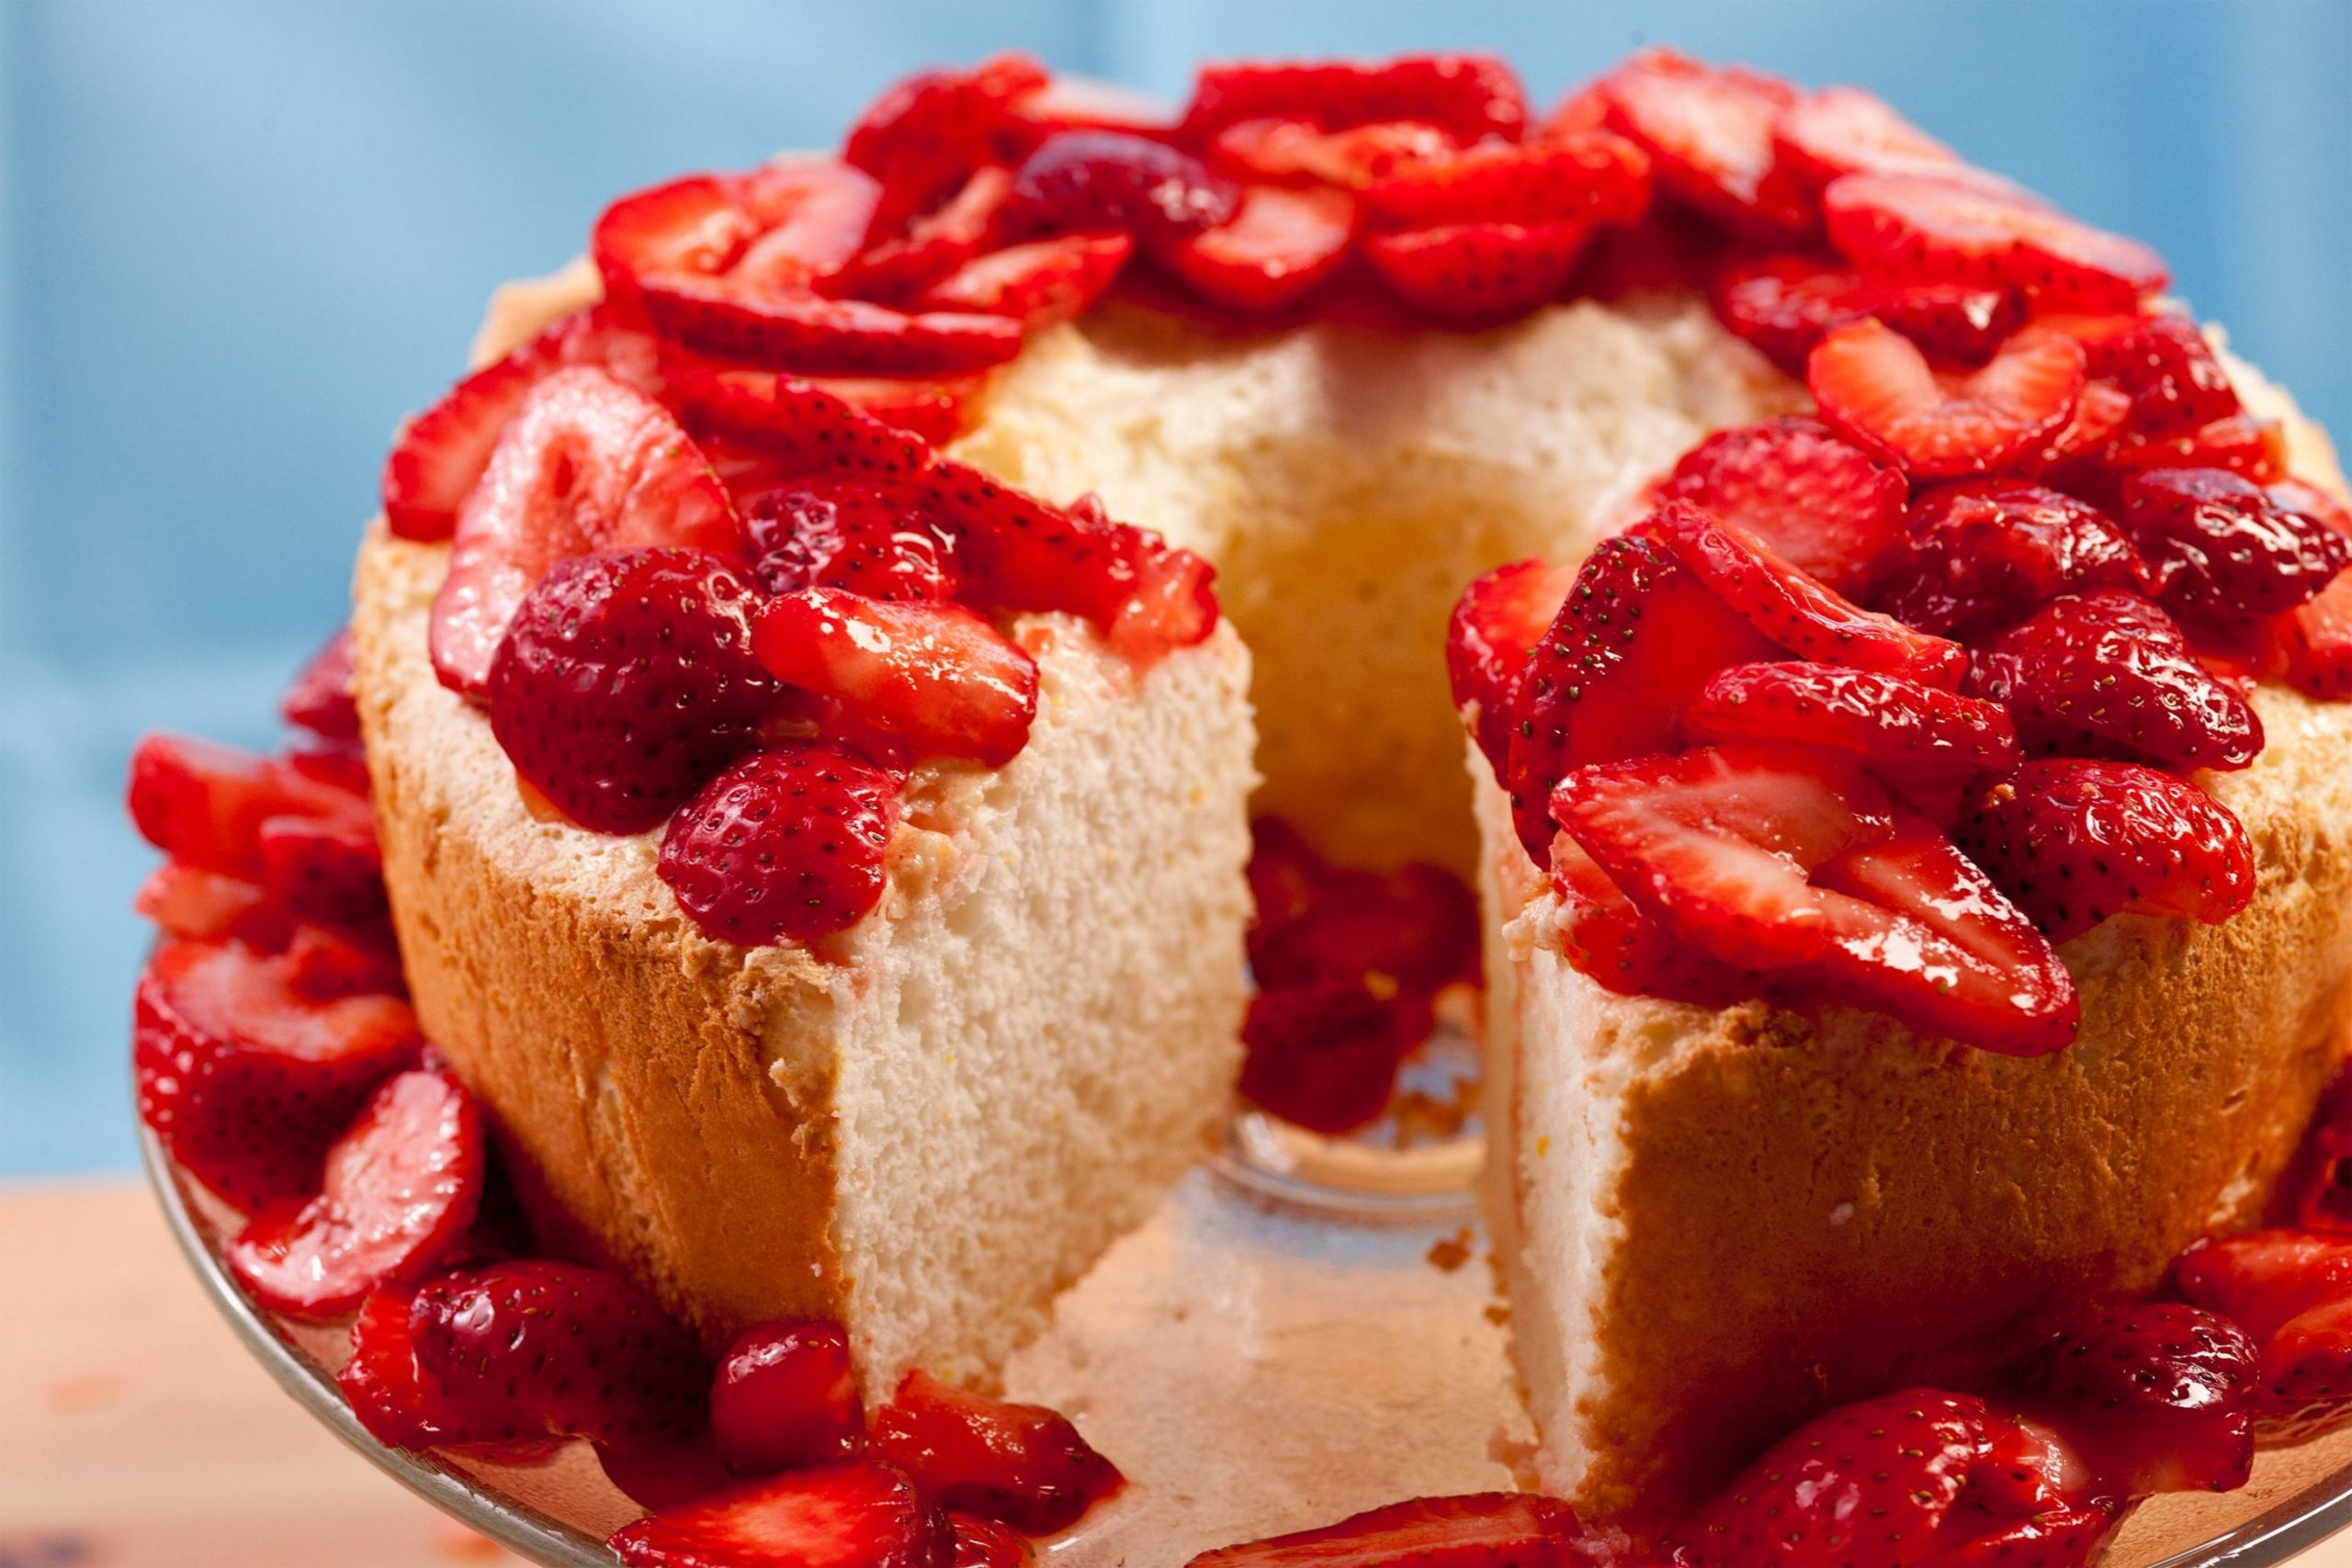 Passover Orange Angel Food Cake with Strawberries - Dessert Recipes Kosher